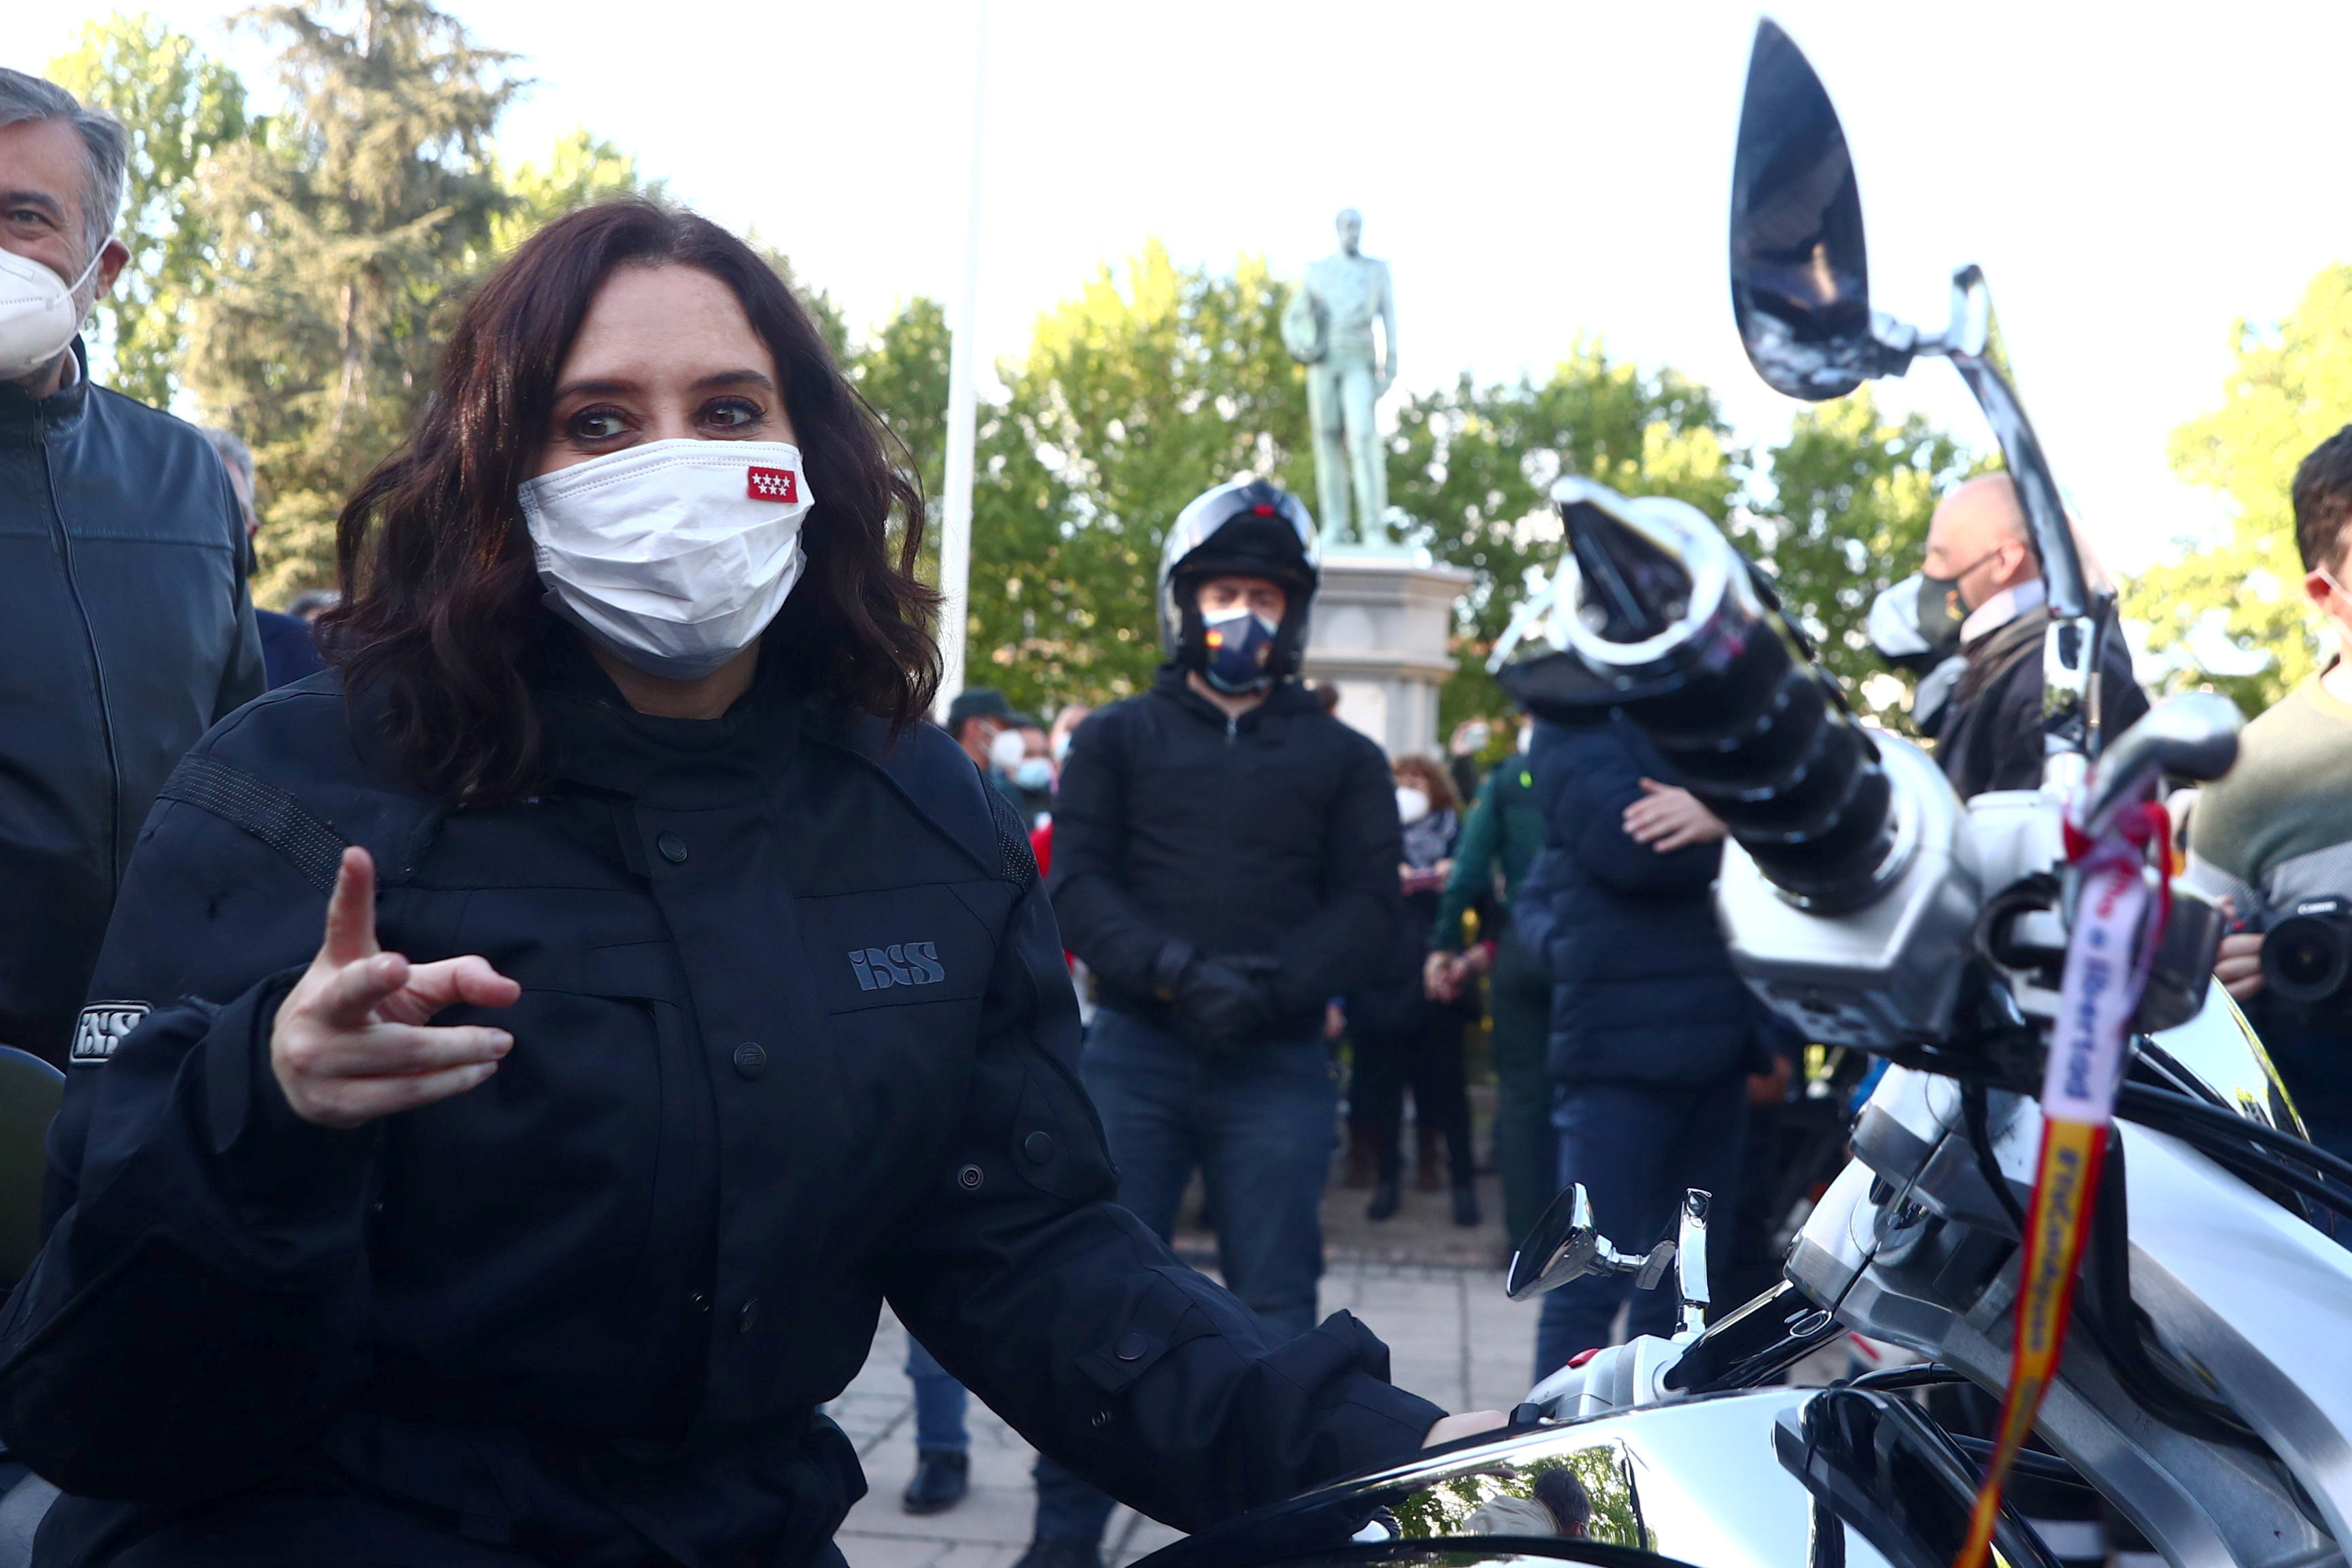 Madrid regional government leader Isabel Diaz Ayuso gestures upon arriving by motorbike to an electoral event ahead upcoming regional elections in Valdemoro, Spain, April 29, 2021. REUTERS/Sergio Perez